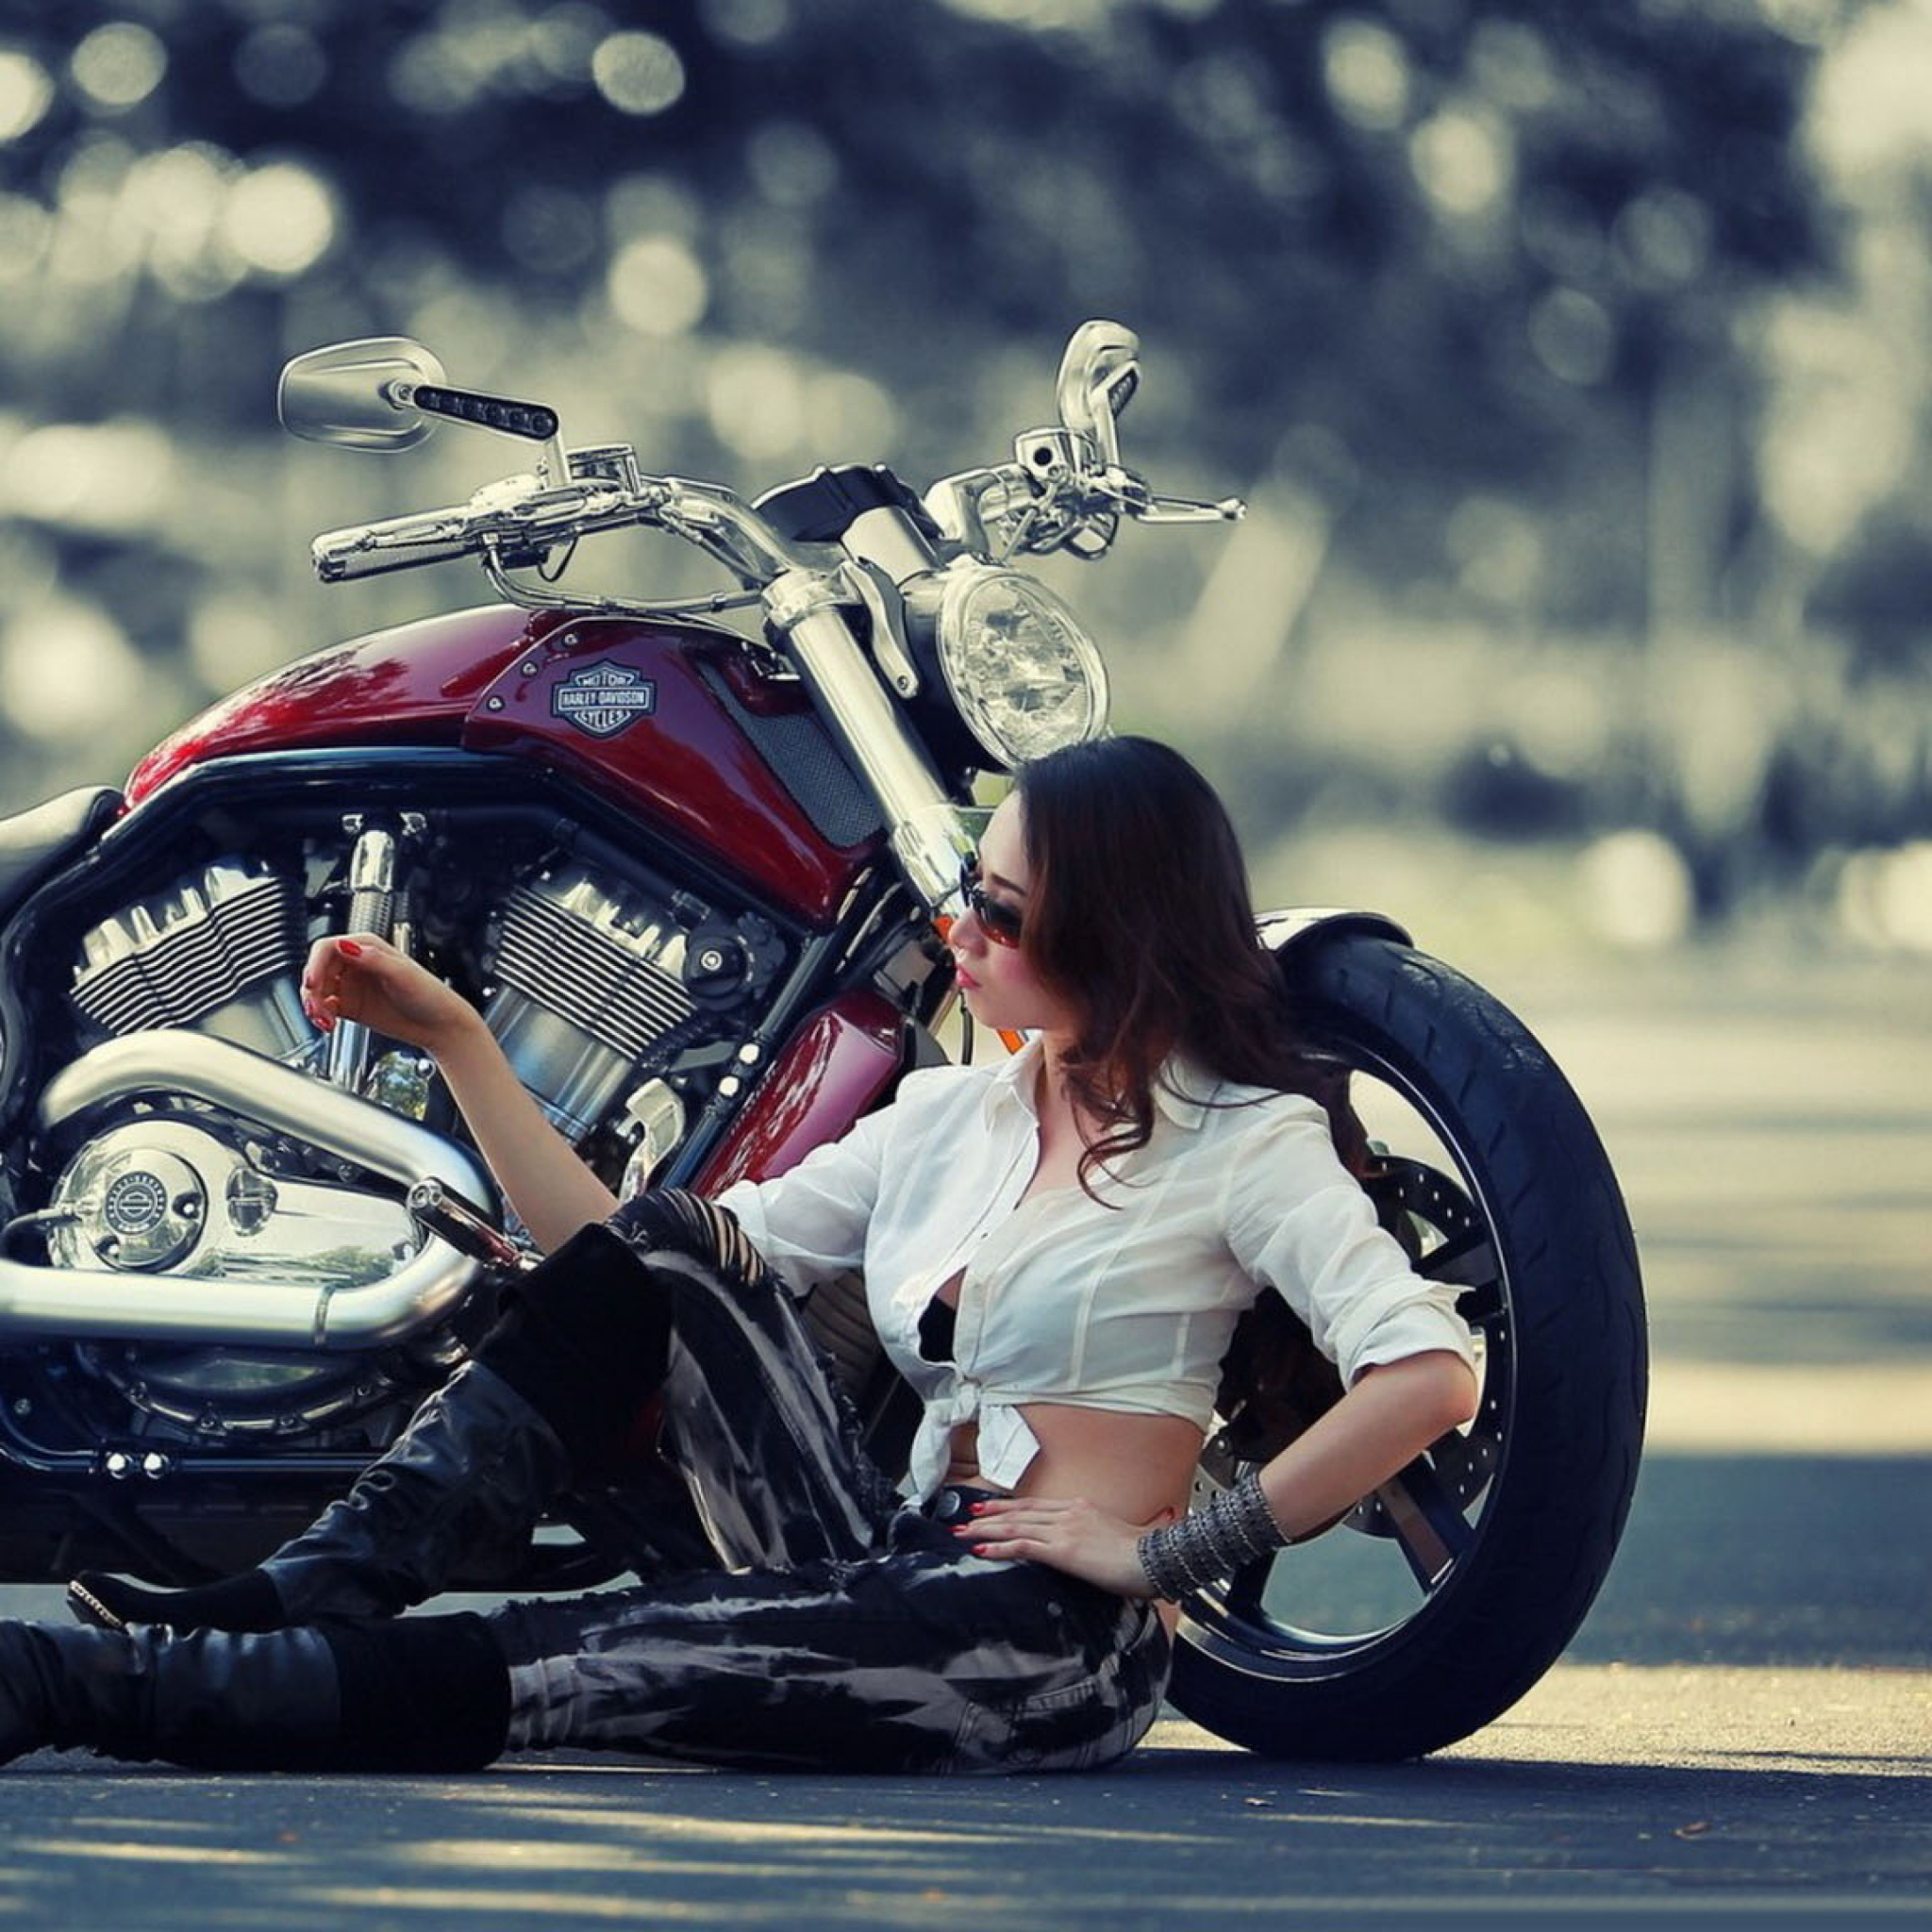 Motorcycle chicks pictures, home cum shot teen